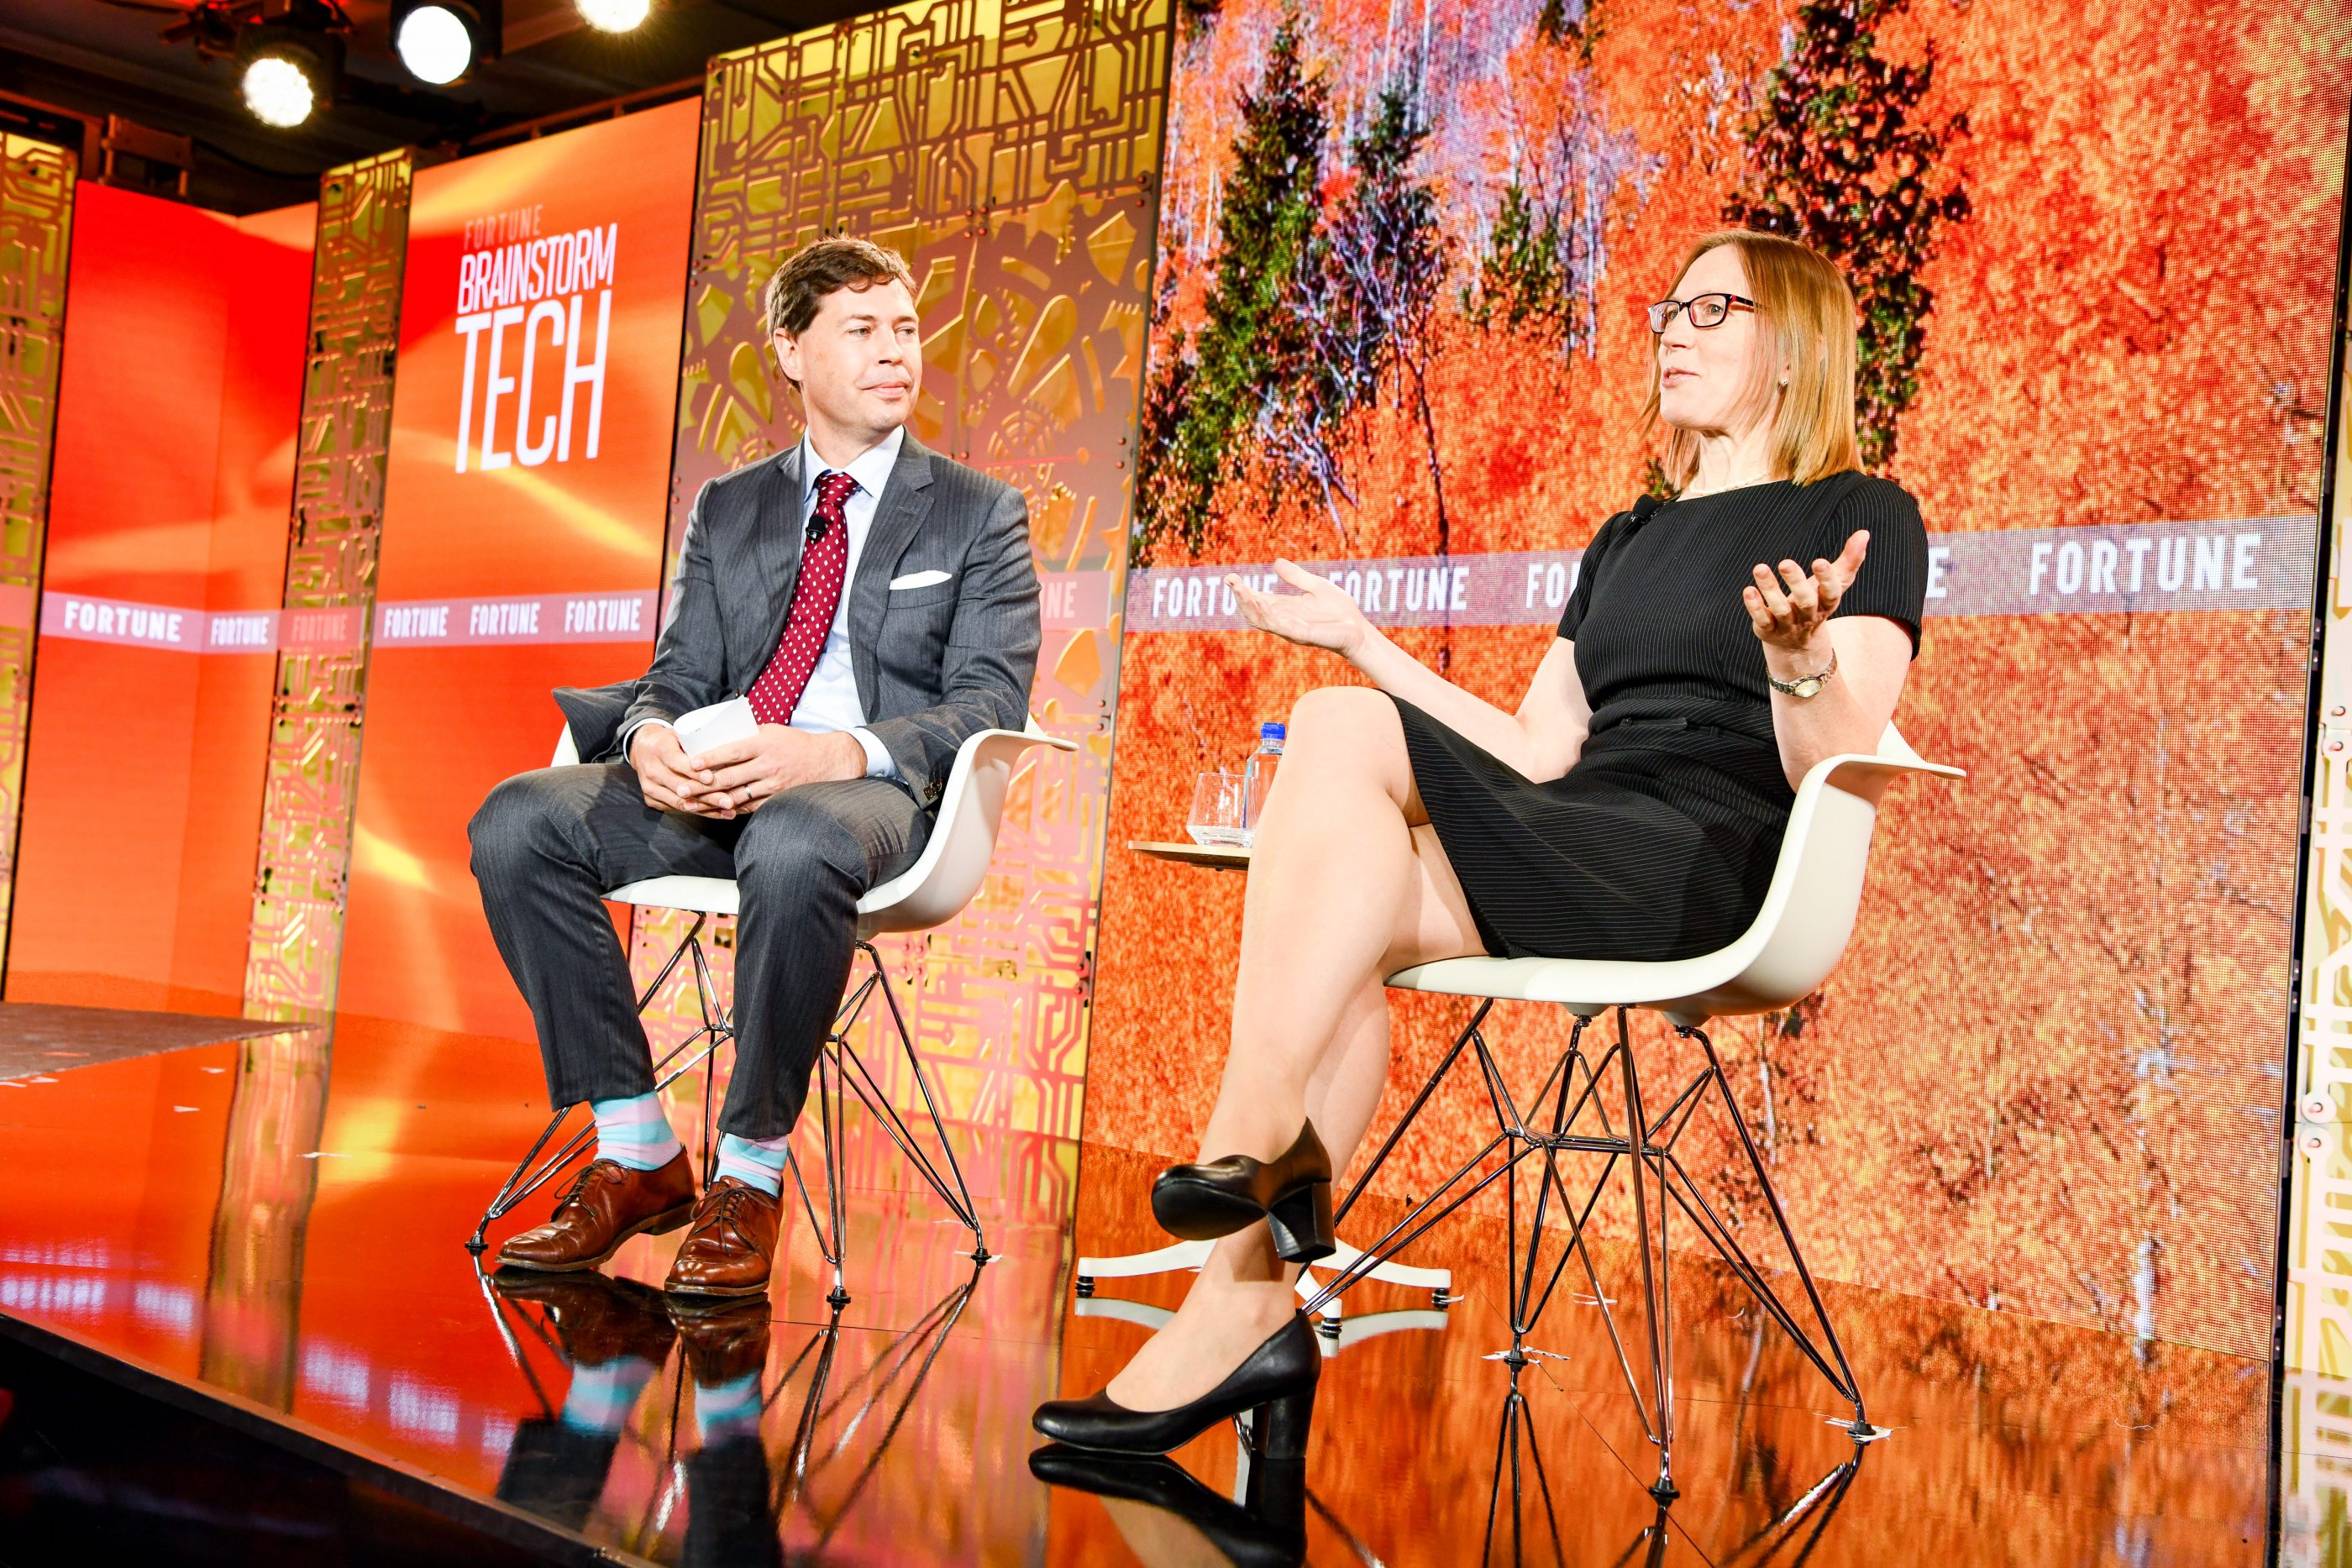 SEC commisioner Hester Peirce (right) on stage with Fortune's Jeff Roberts at the Brainstorm Tech conference in Aspen, Colo., on July 16, 2019.